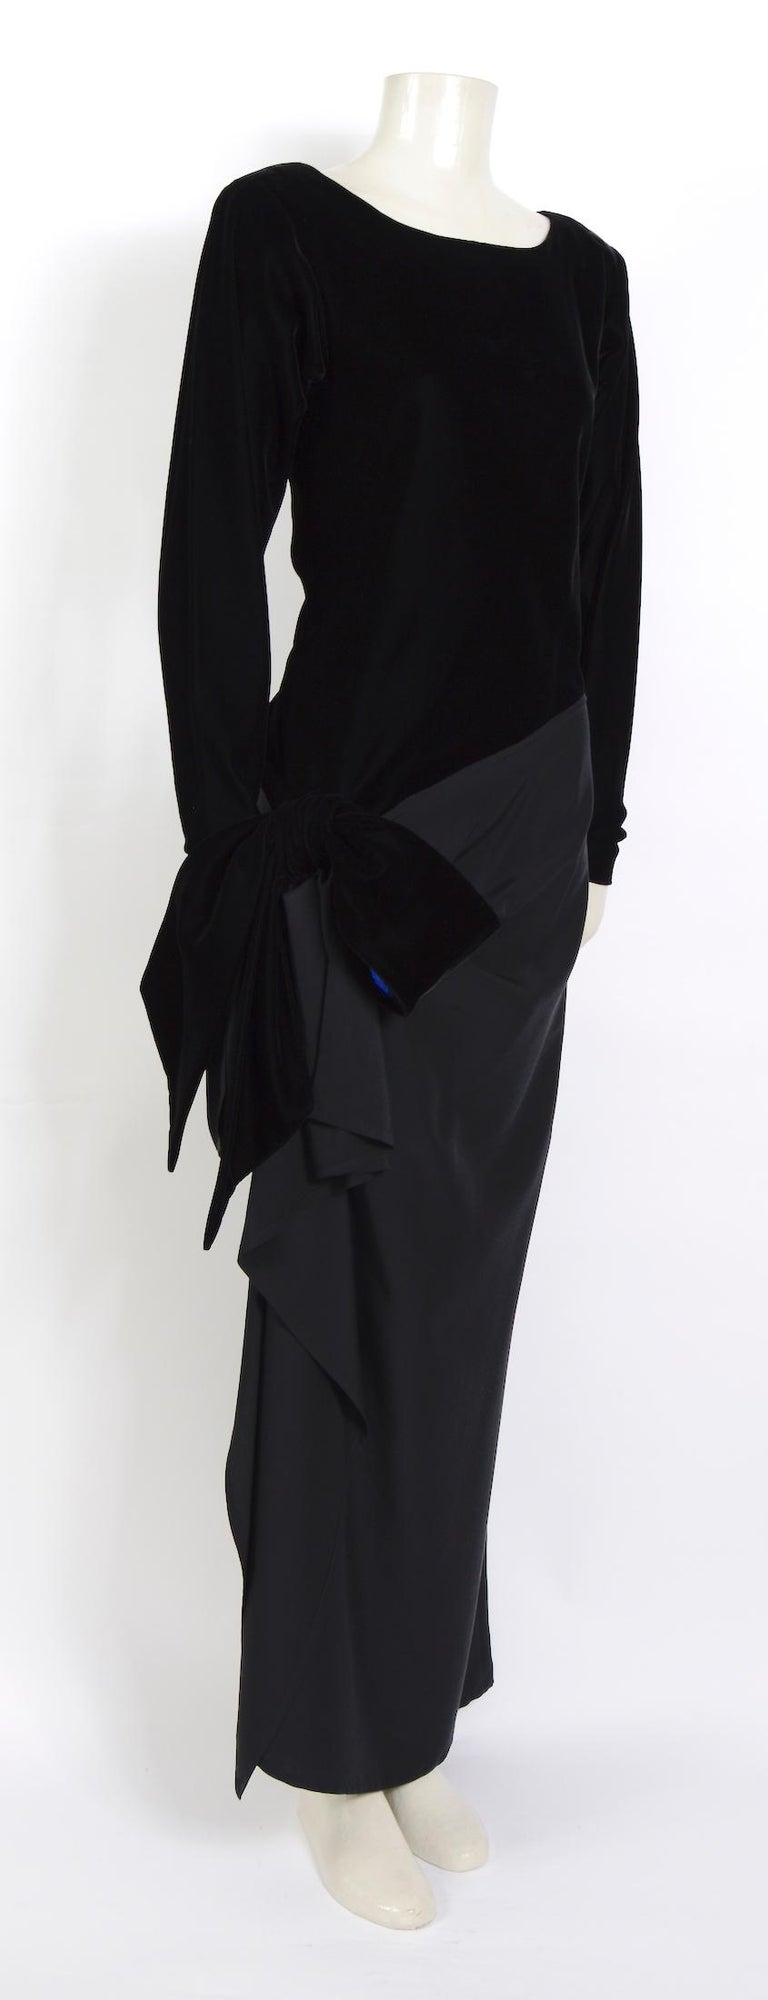 Women's Yves Saint Laurent 1980s vintage black velvet and silk dress For Sale